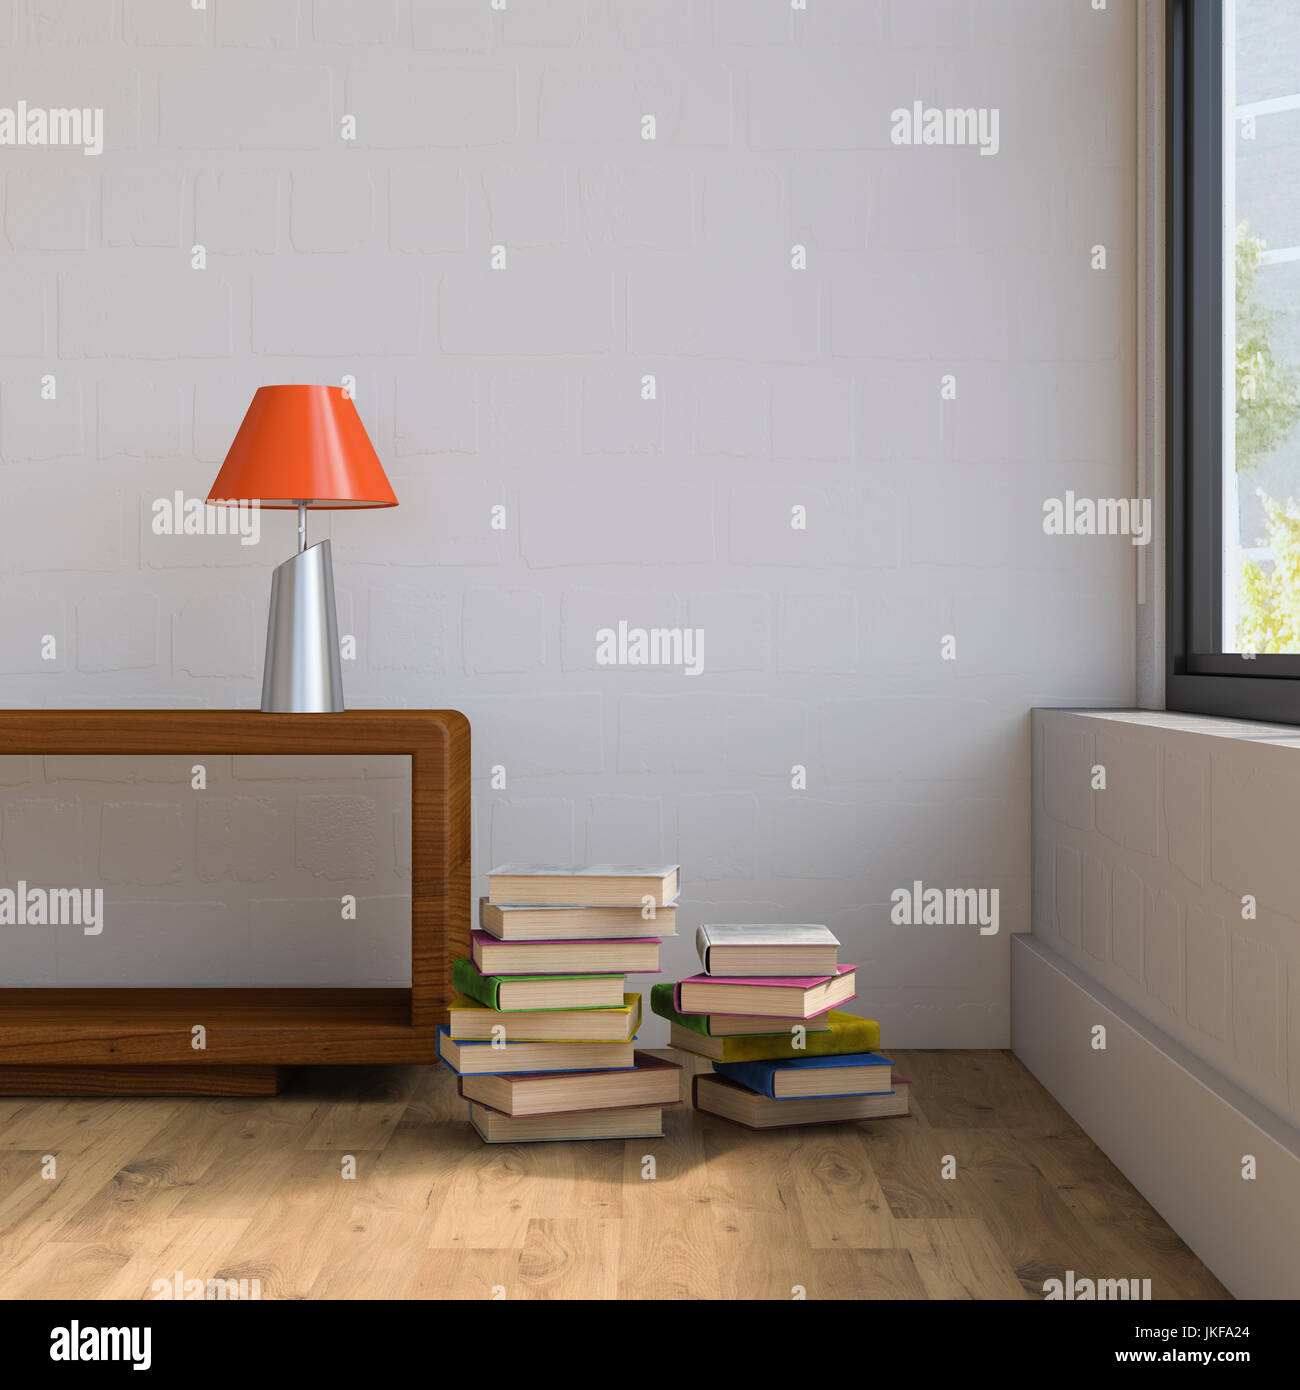 Vintage sideboard with table lamp and stack of books - Stock Image